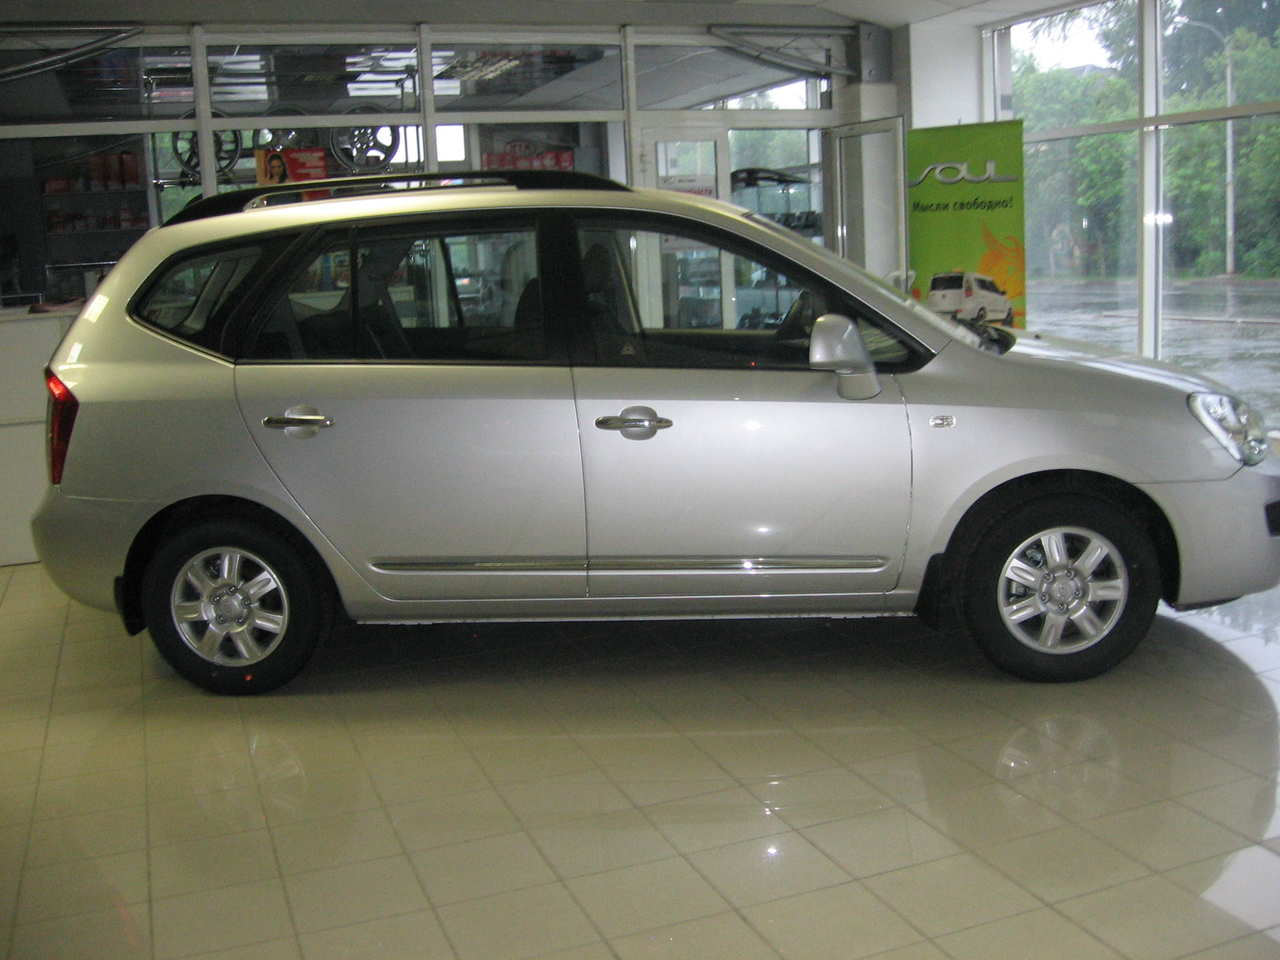 2009 Kia Carens For Sale 2 0 Gasoline Ff Manual For Sale